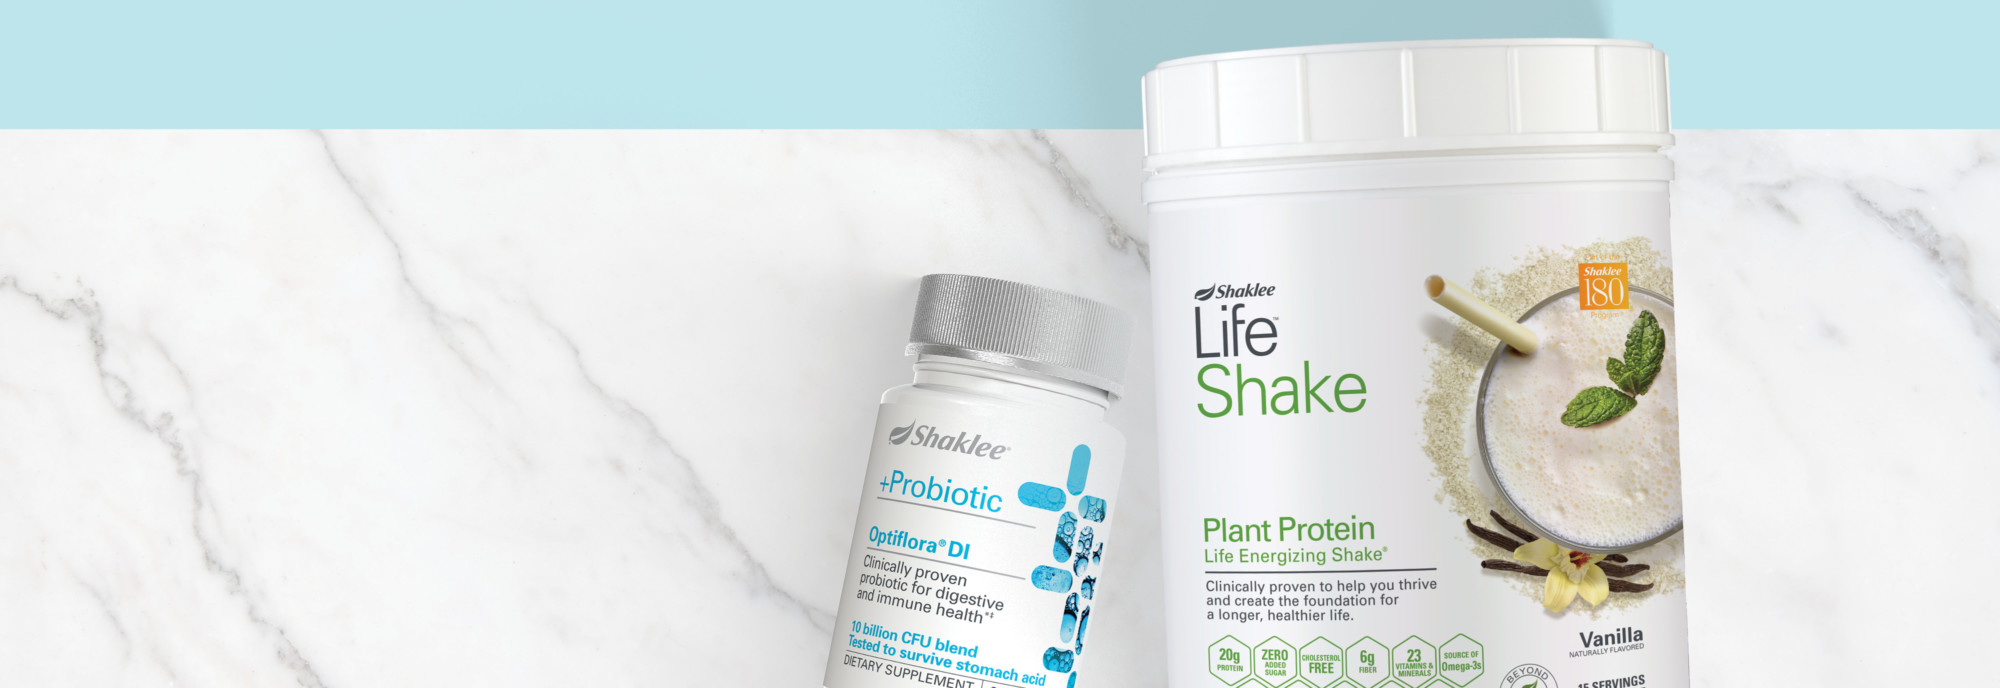 New Shaklee Nutrition